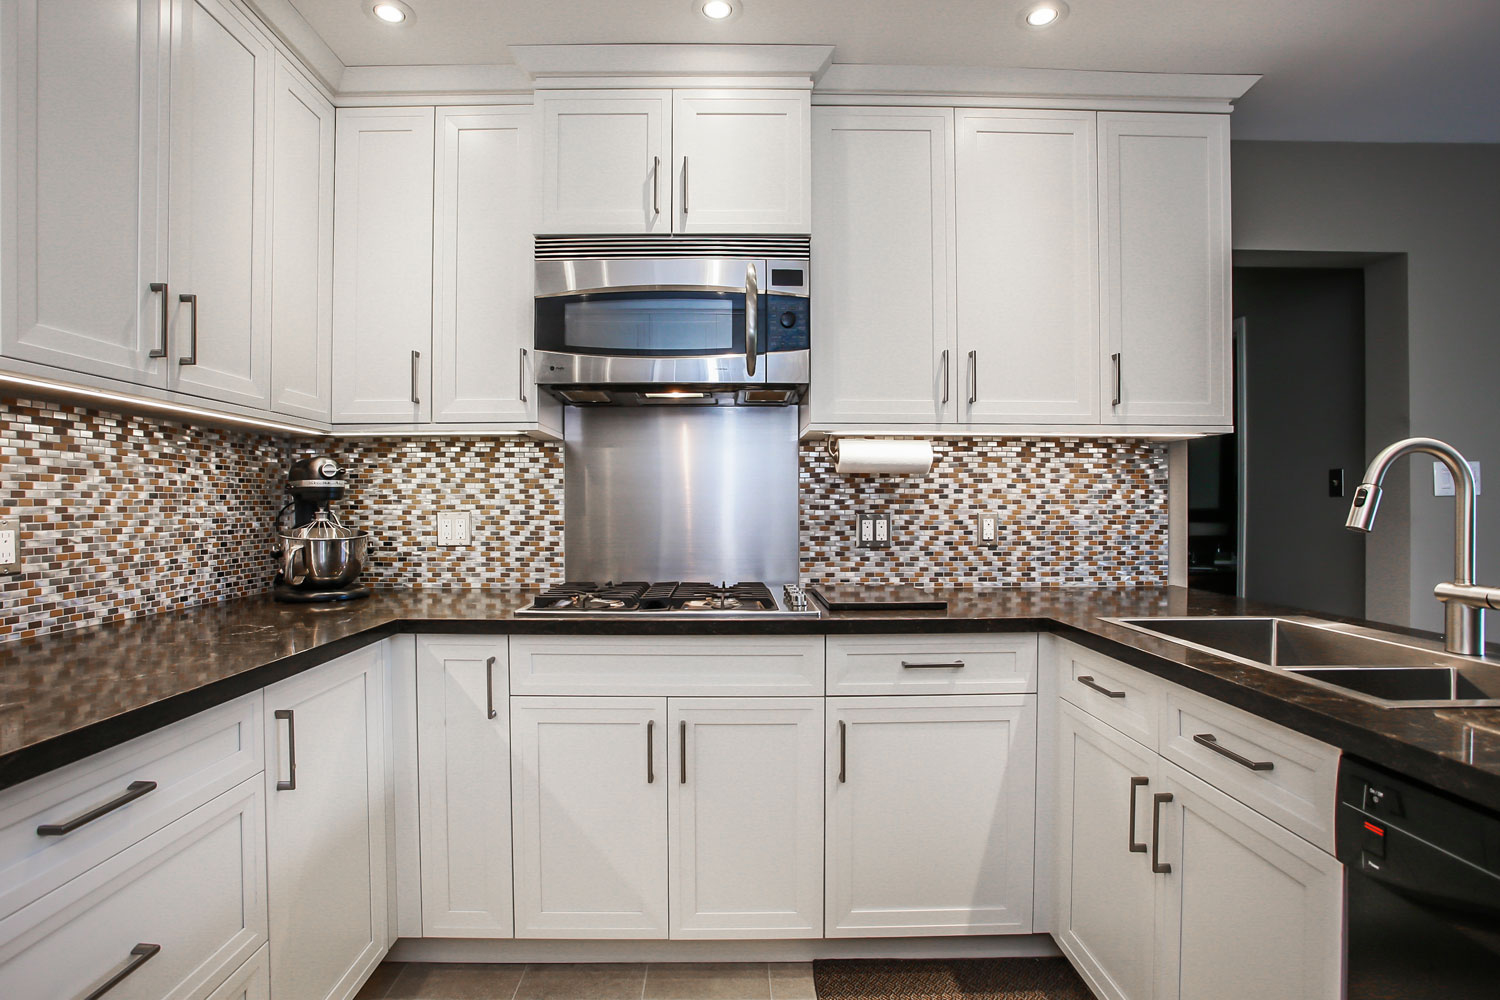 White kitchen design with built-in microwave